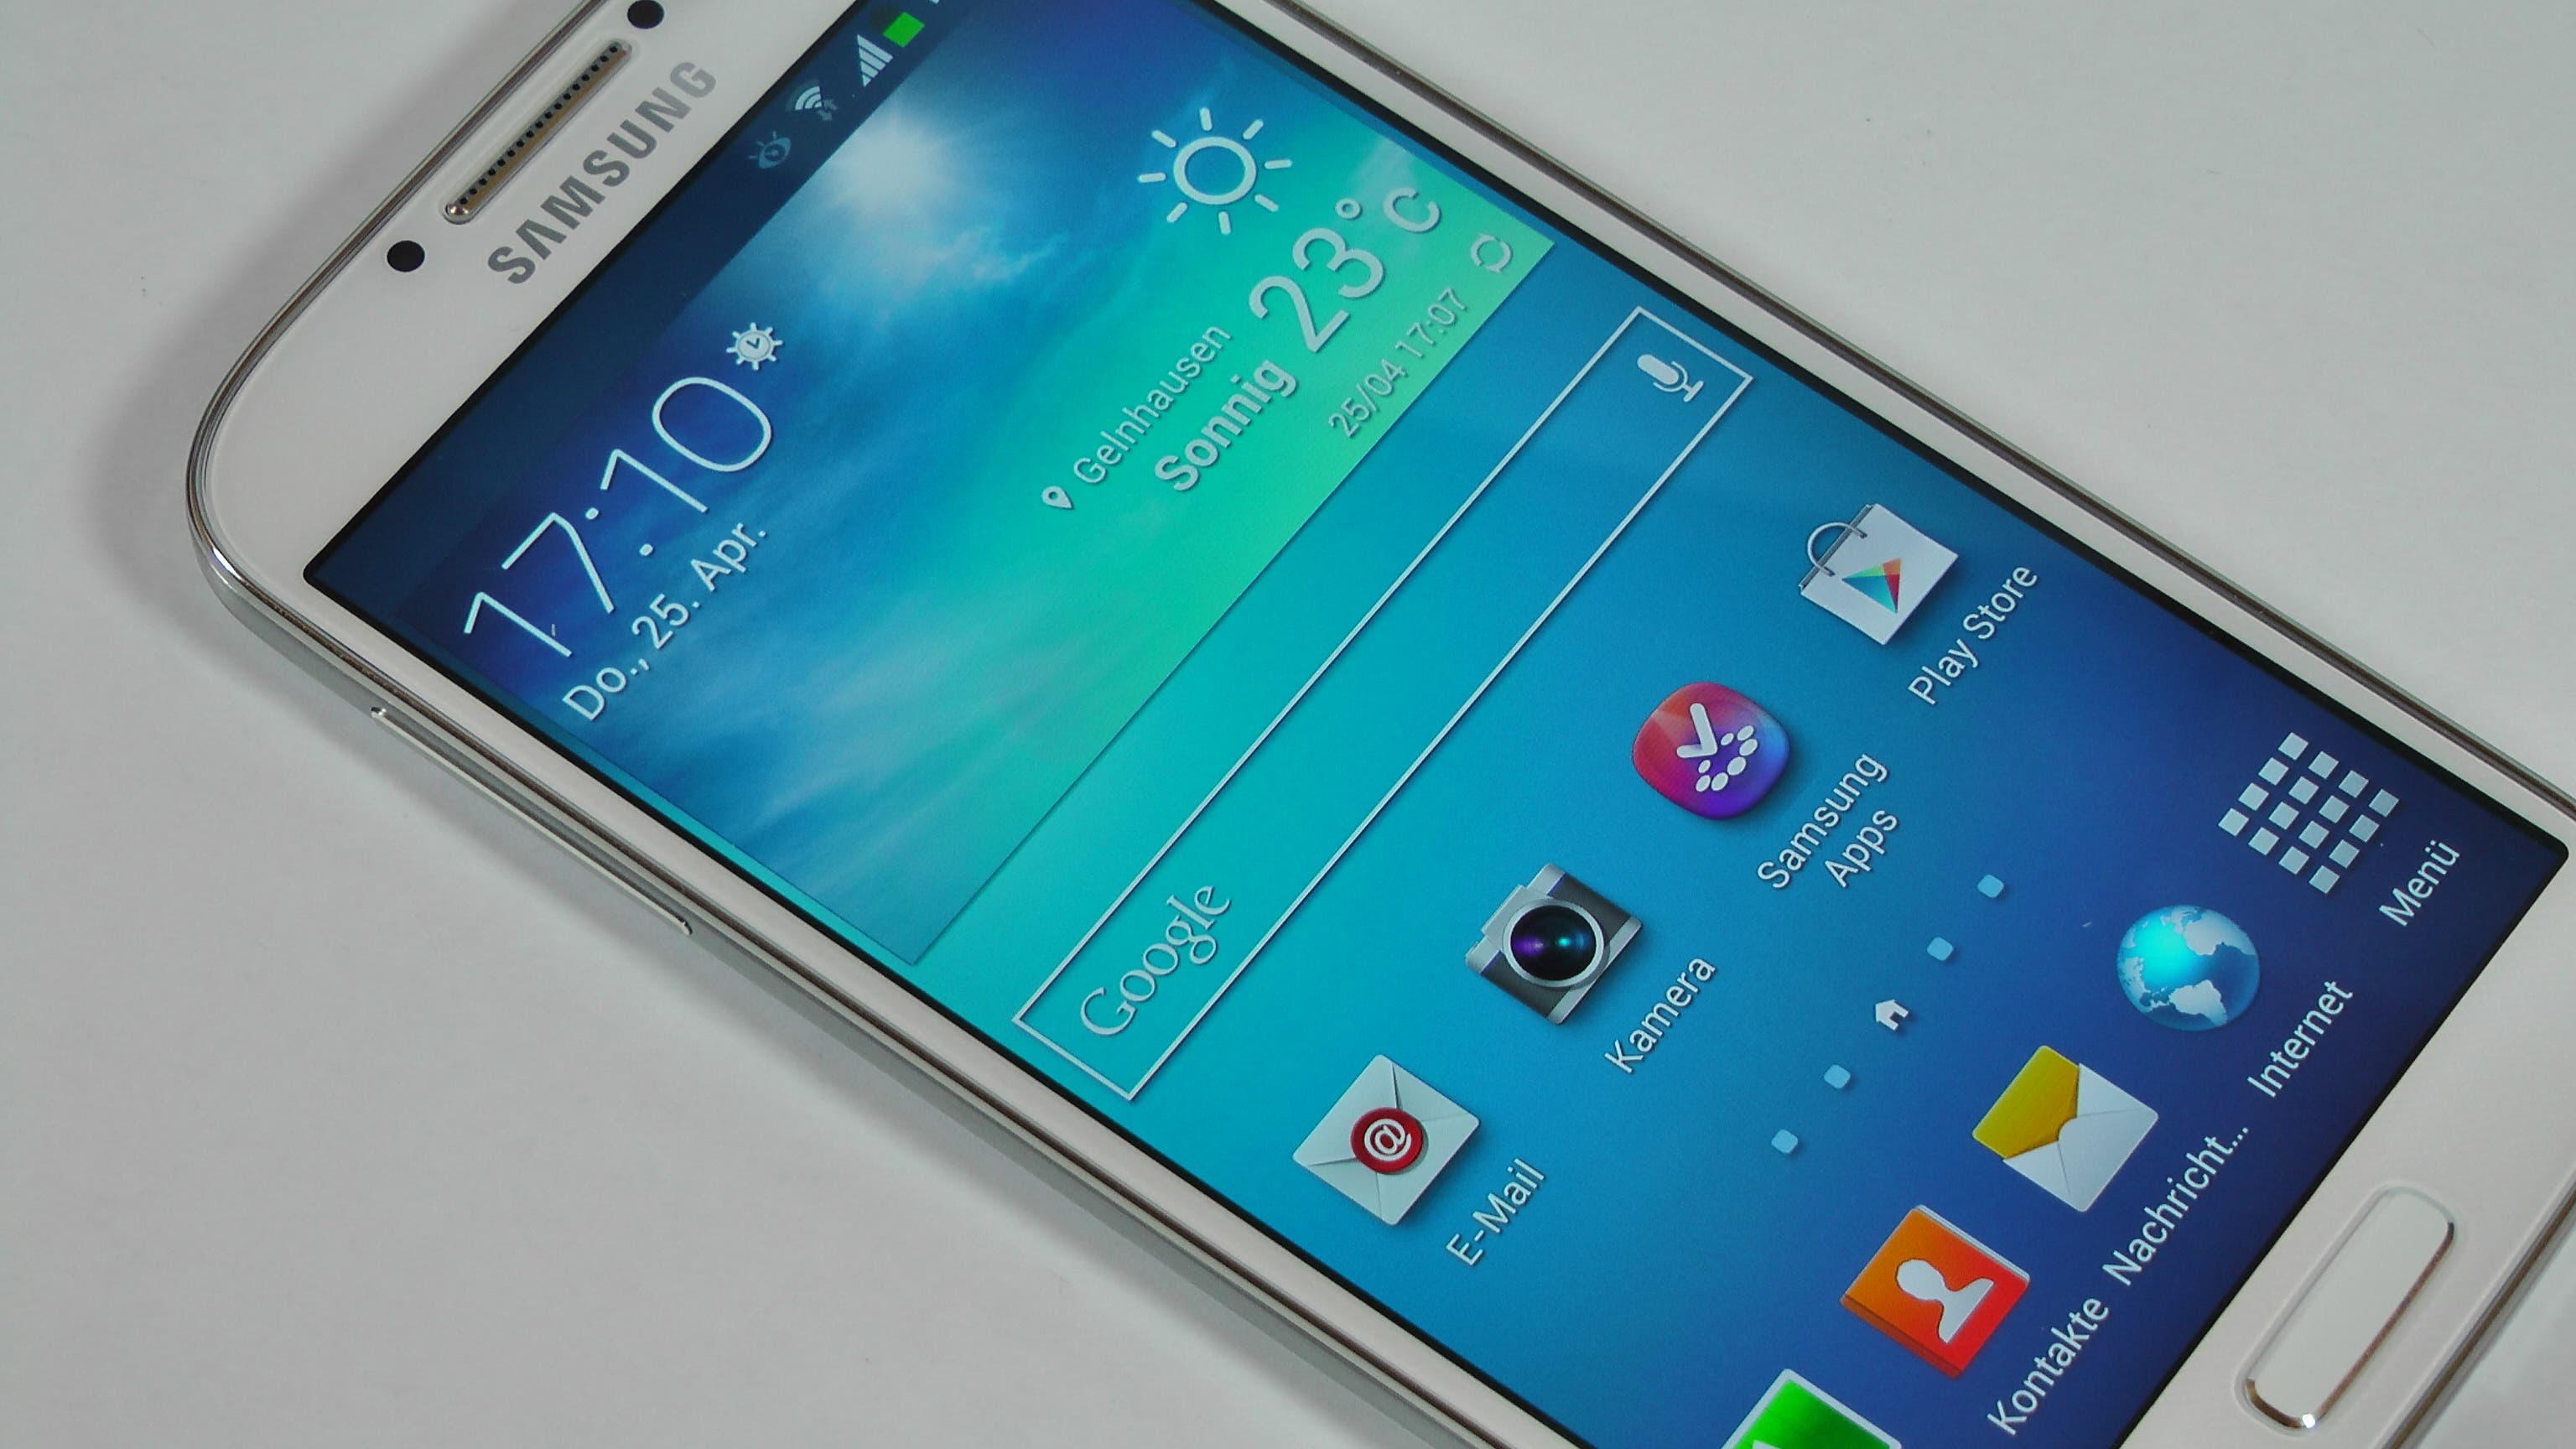 Samsung Galaxy S4 LTE-Advanced im August mit Qualcomm Snapdragon 800 (2,3 GHz!)?